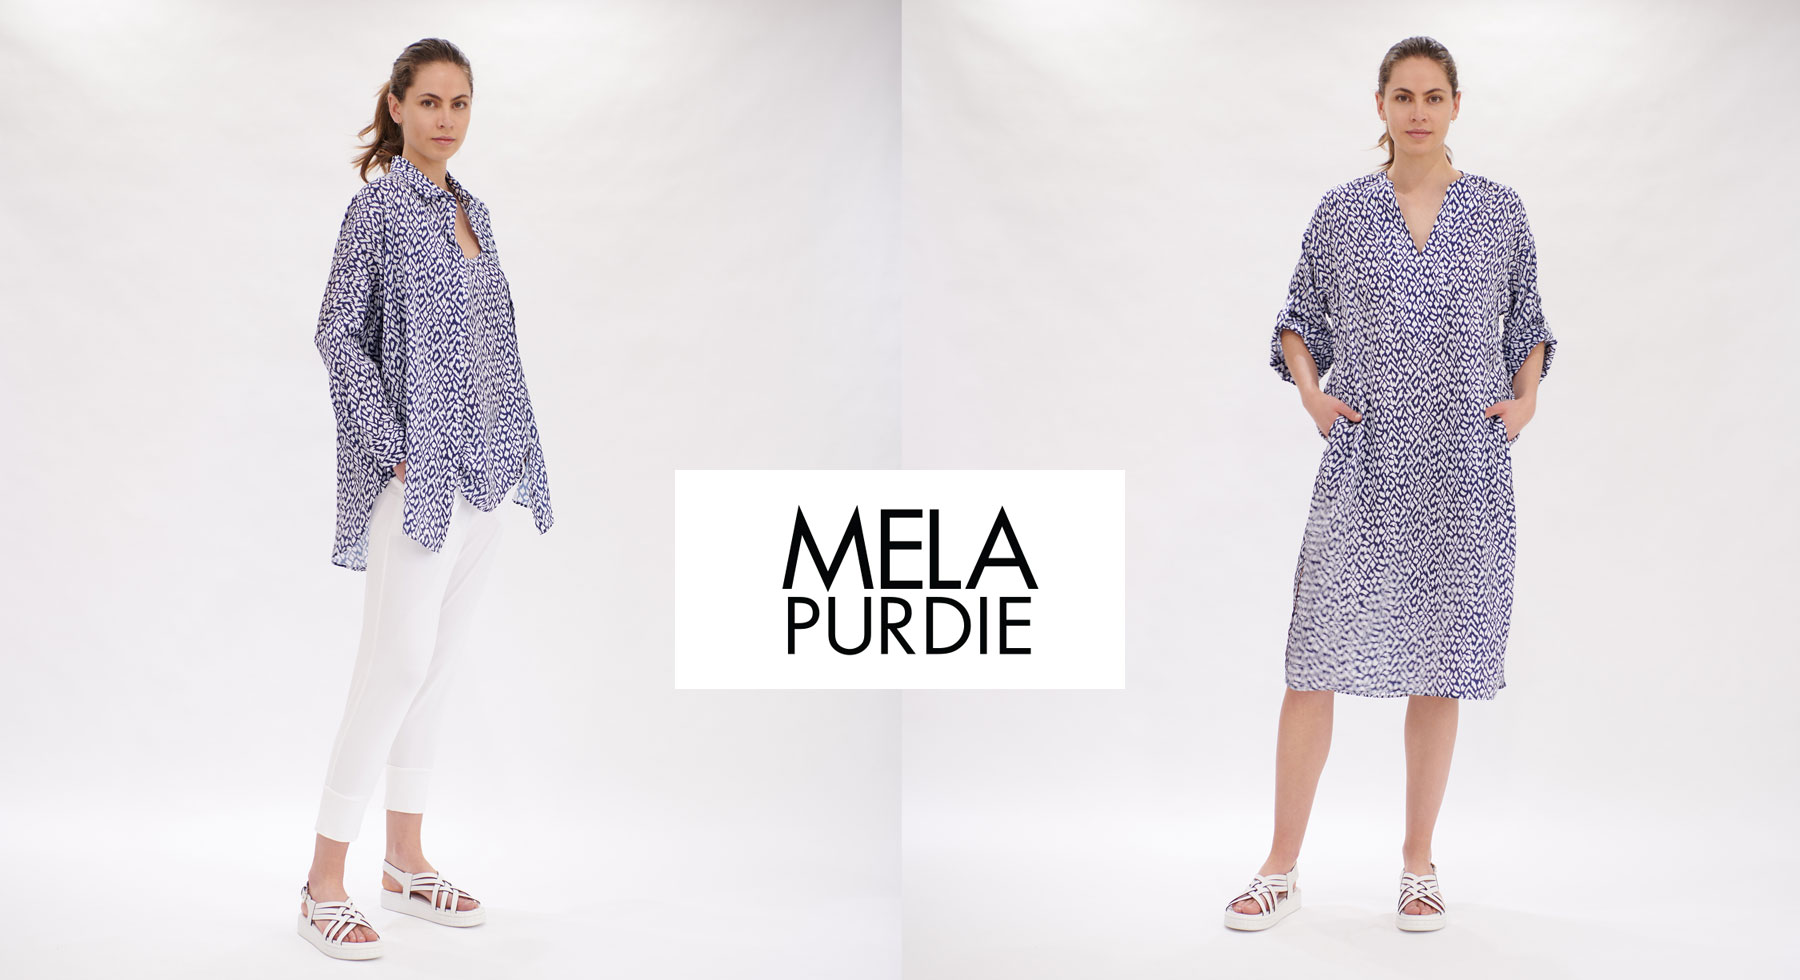 Mela Purdie SS20 stockists auckland frontline designer clothes